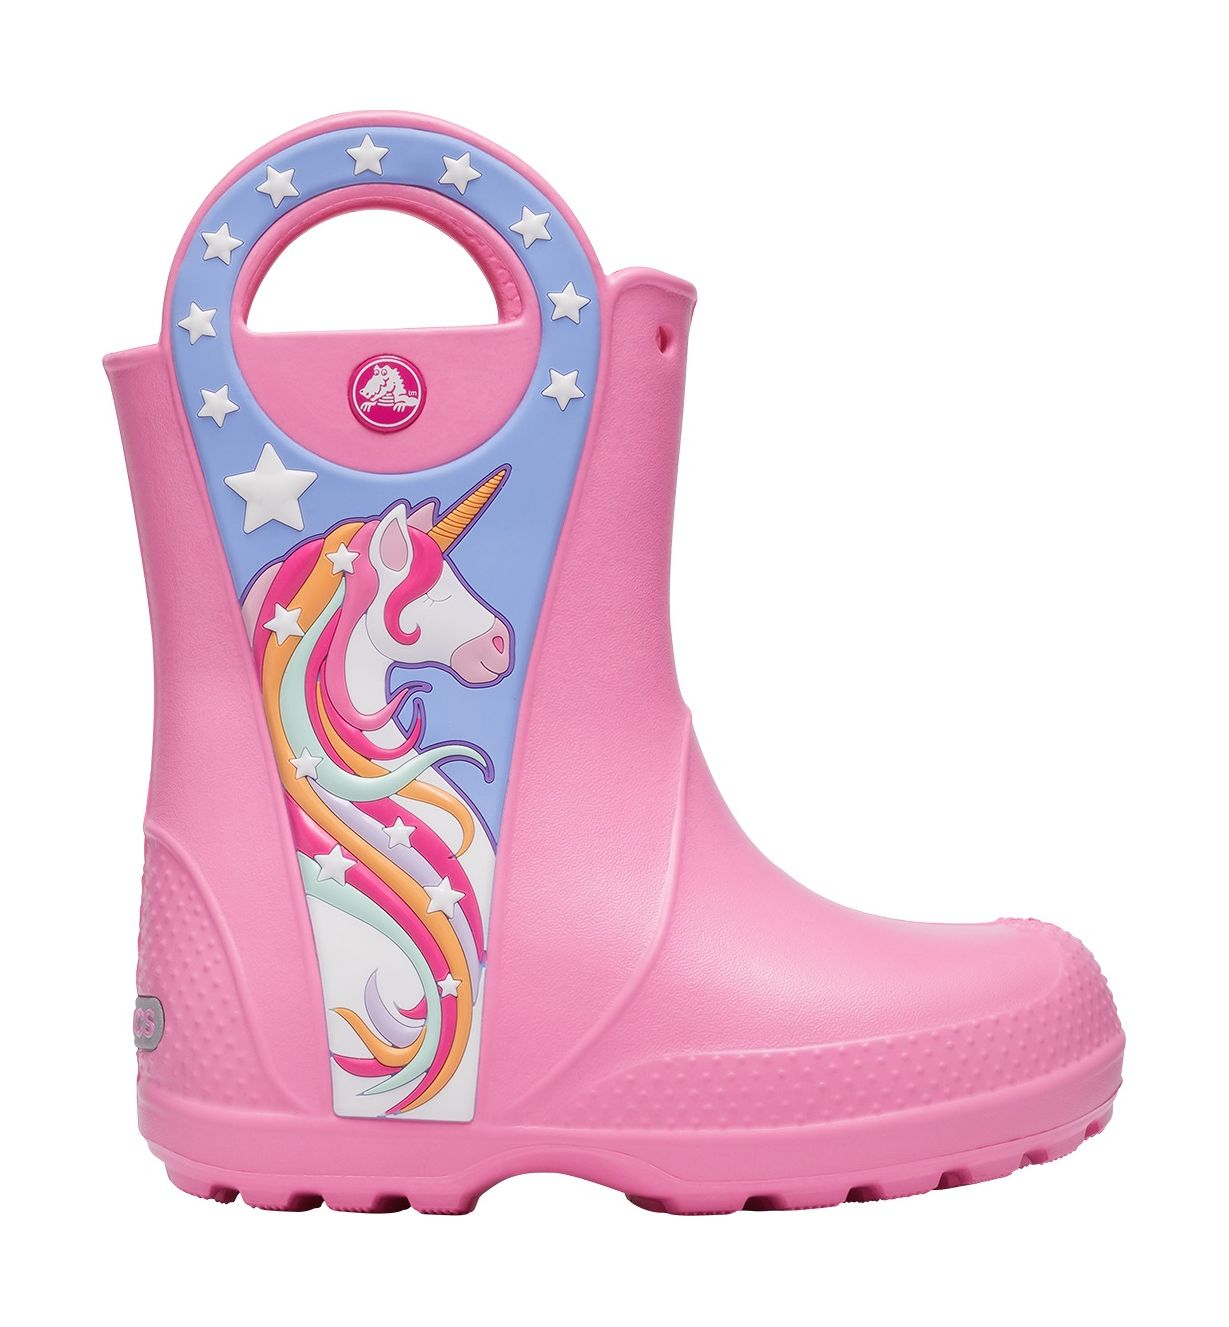 Crocs™ Funlab Unicorn Patch Rain Boot Kids Pink Lemonade 33,5